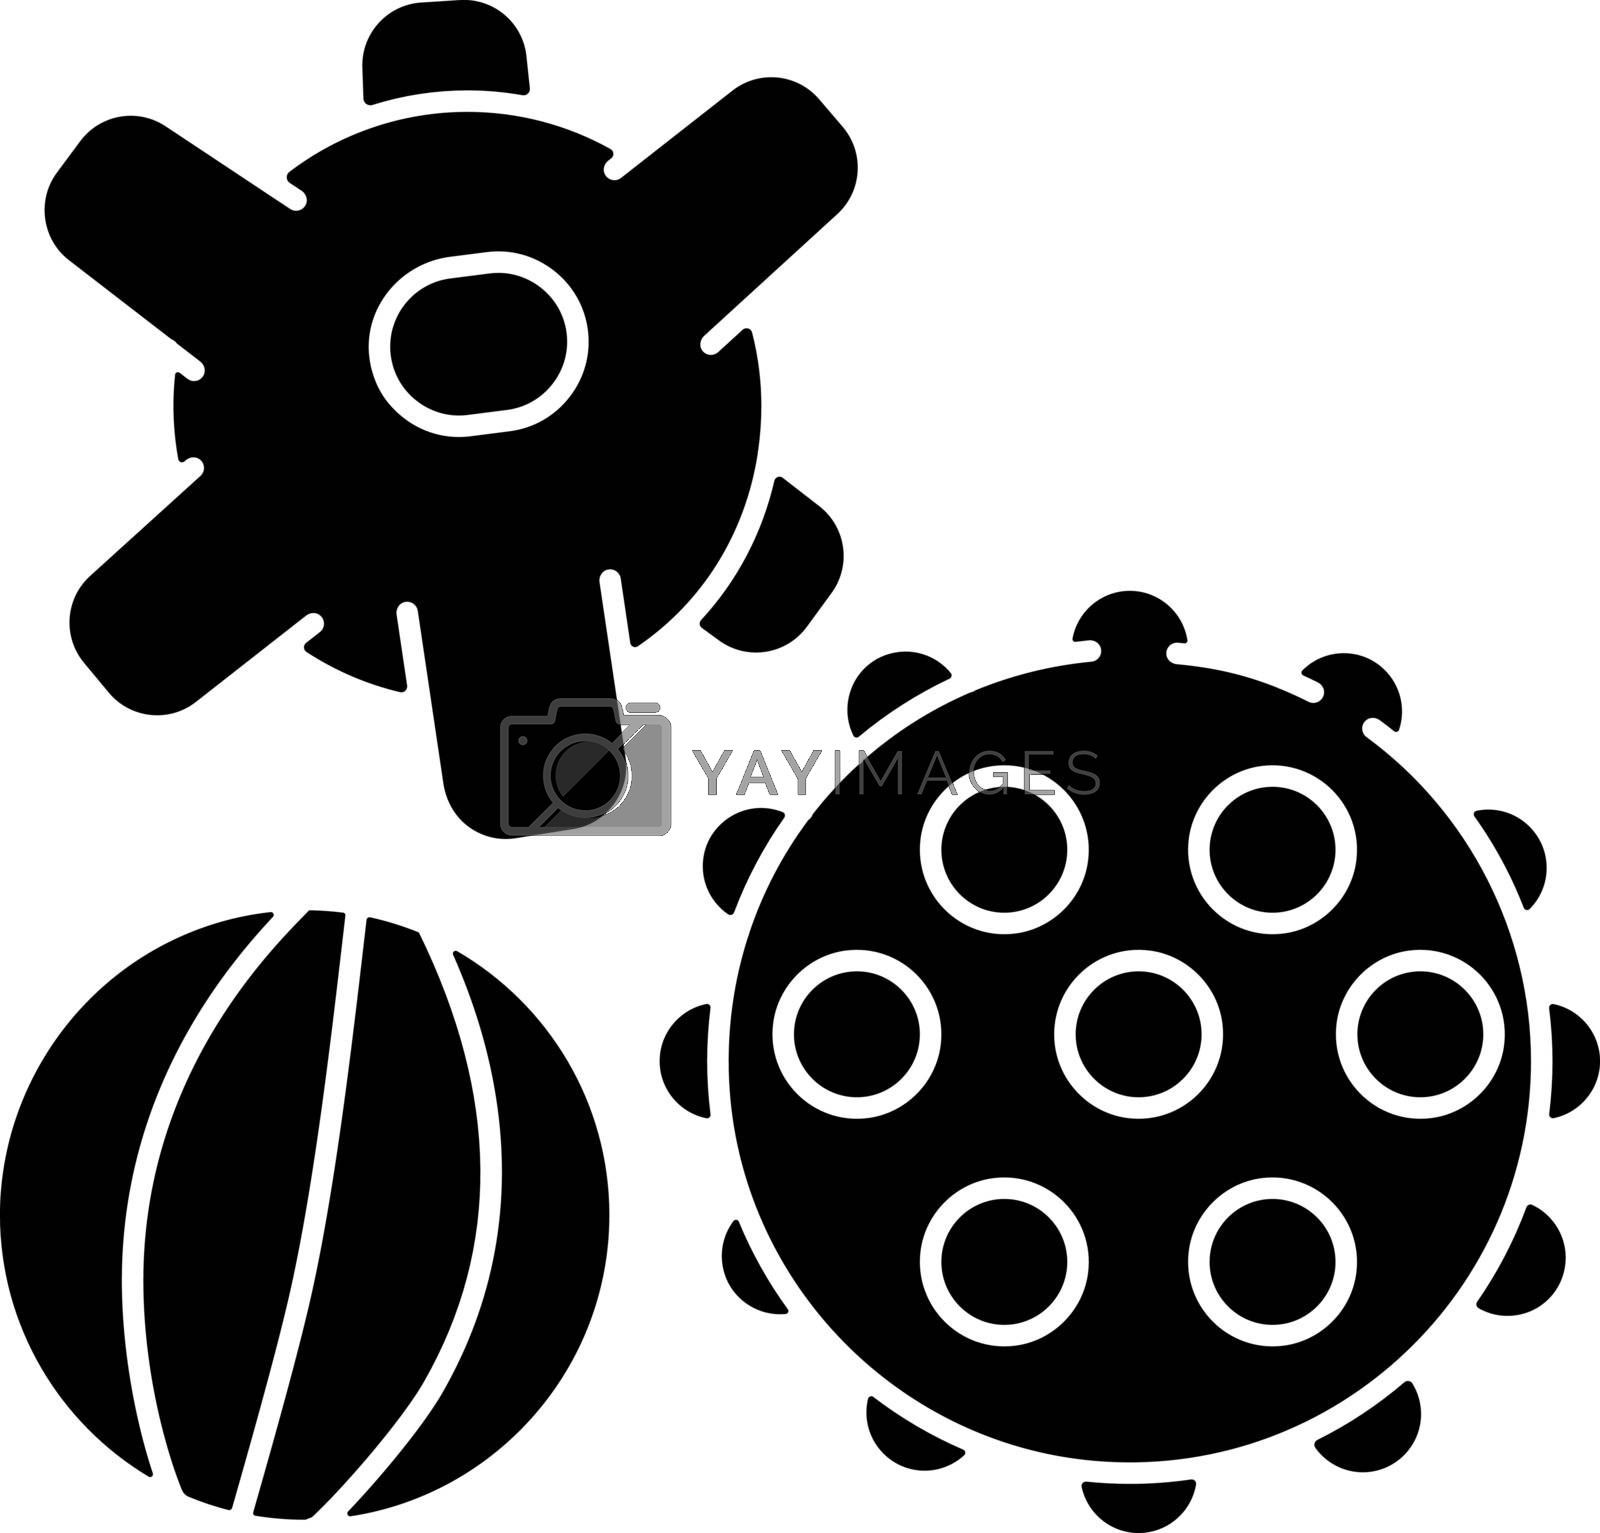 Sensory balls black glyph icon. Tactile and spiky balls. Early childhood. Toys for infants development. Fine and gross motor skills. Silhouette symbol on white space. Vector isolated illustration